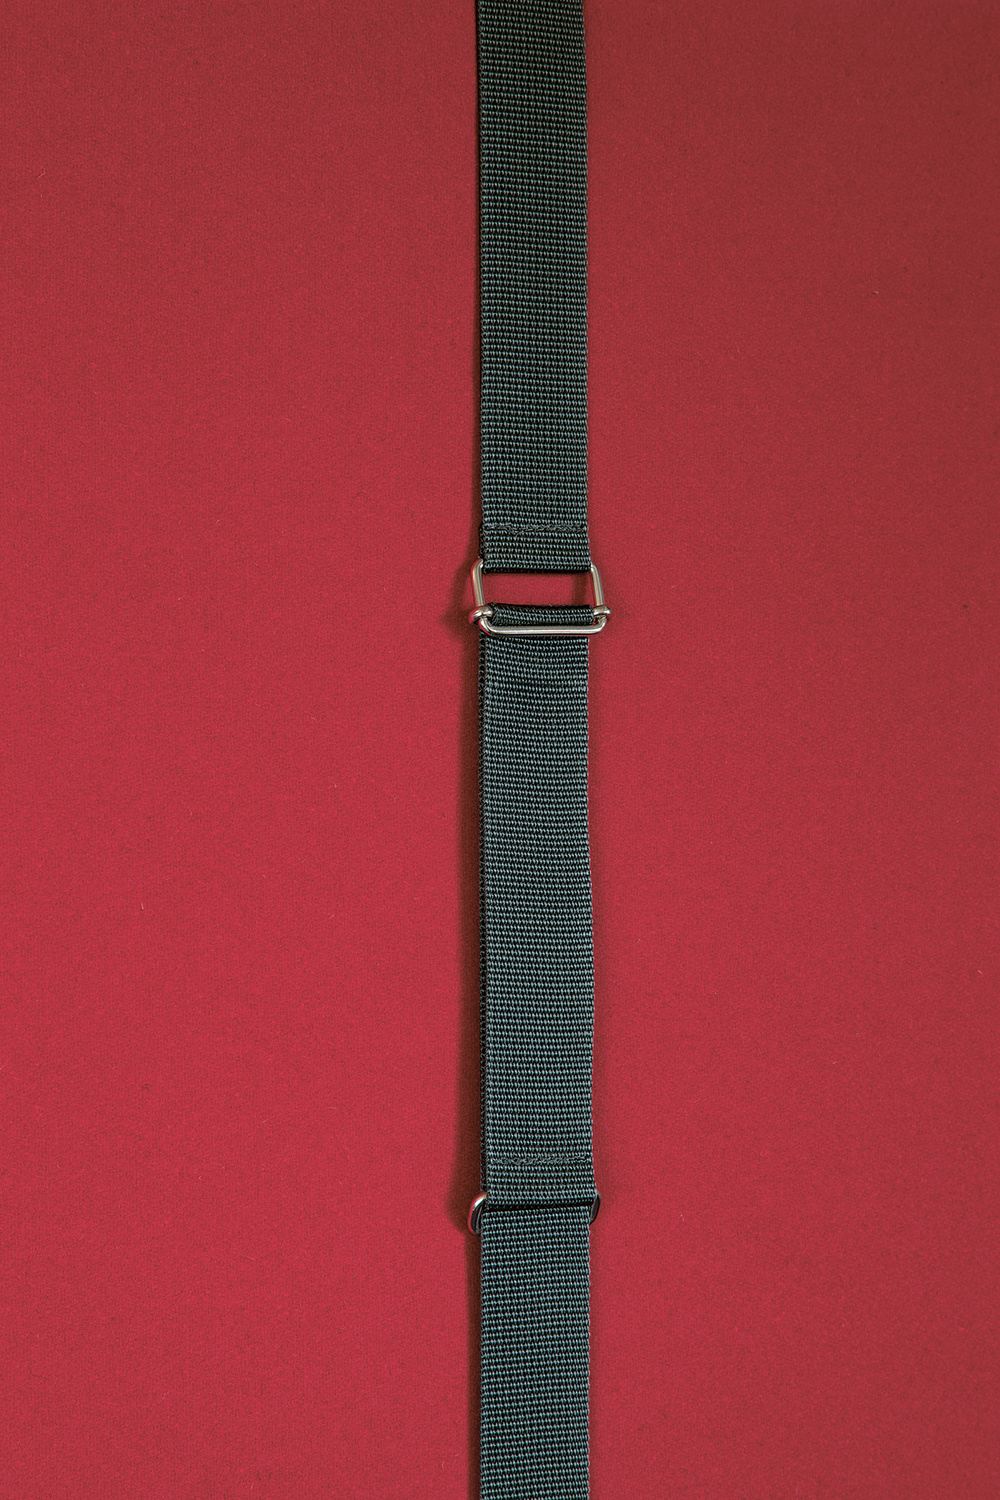 SILENTO is available in over 45 colours, with which 6 strap colours can be combined.